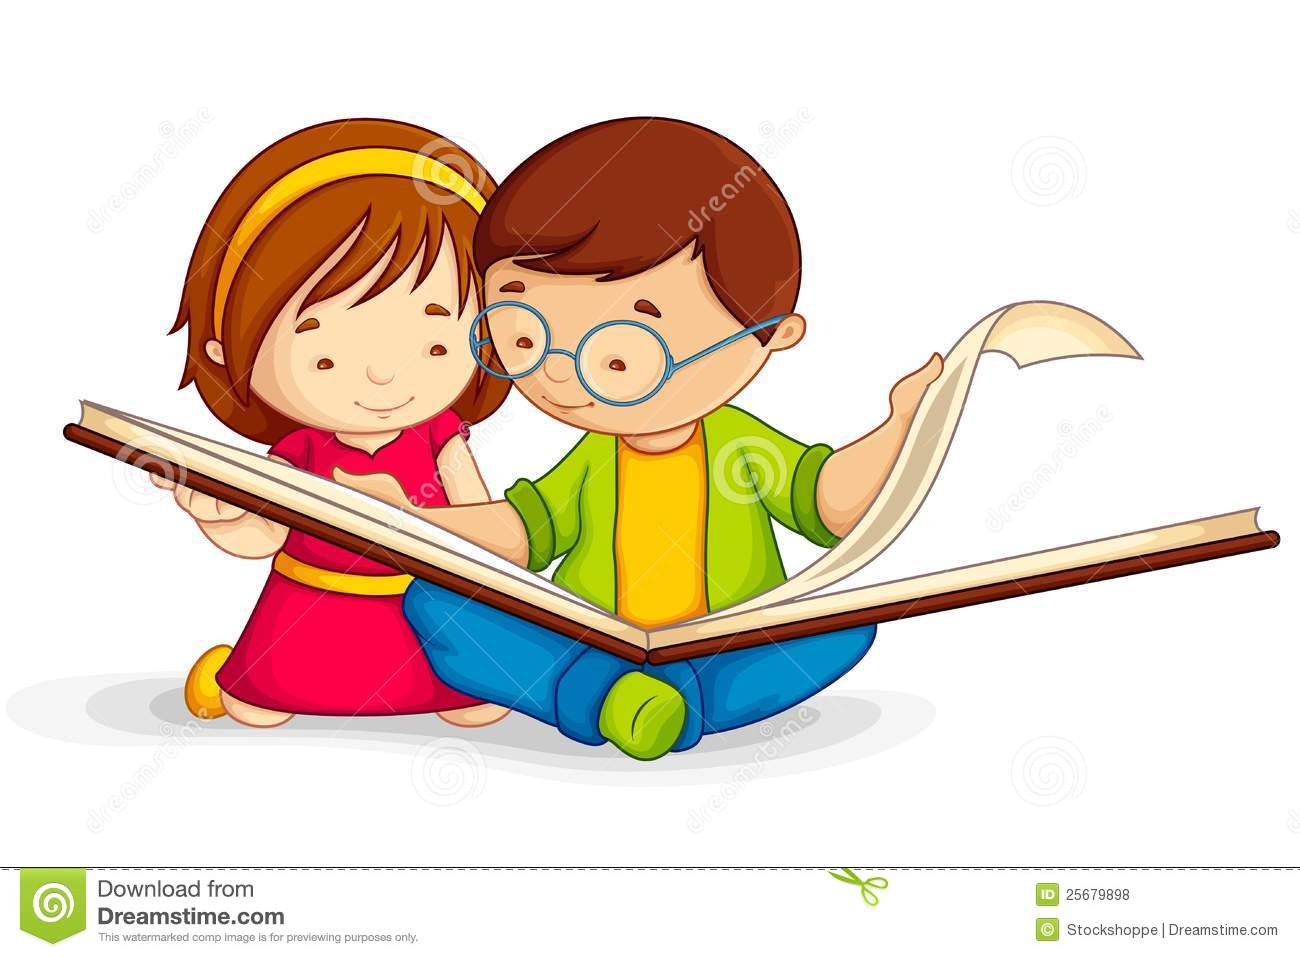 Children with books clipart picture freeuse library Children with books clipart - ClipartFest picture freeuse library